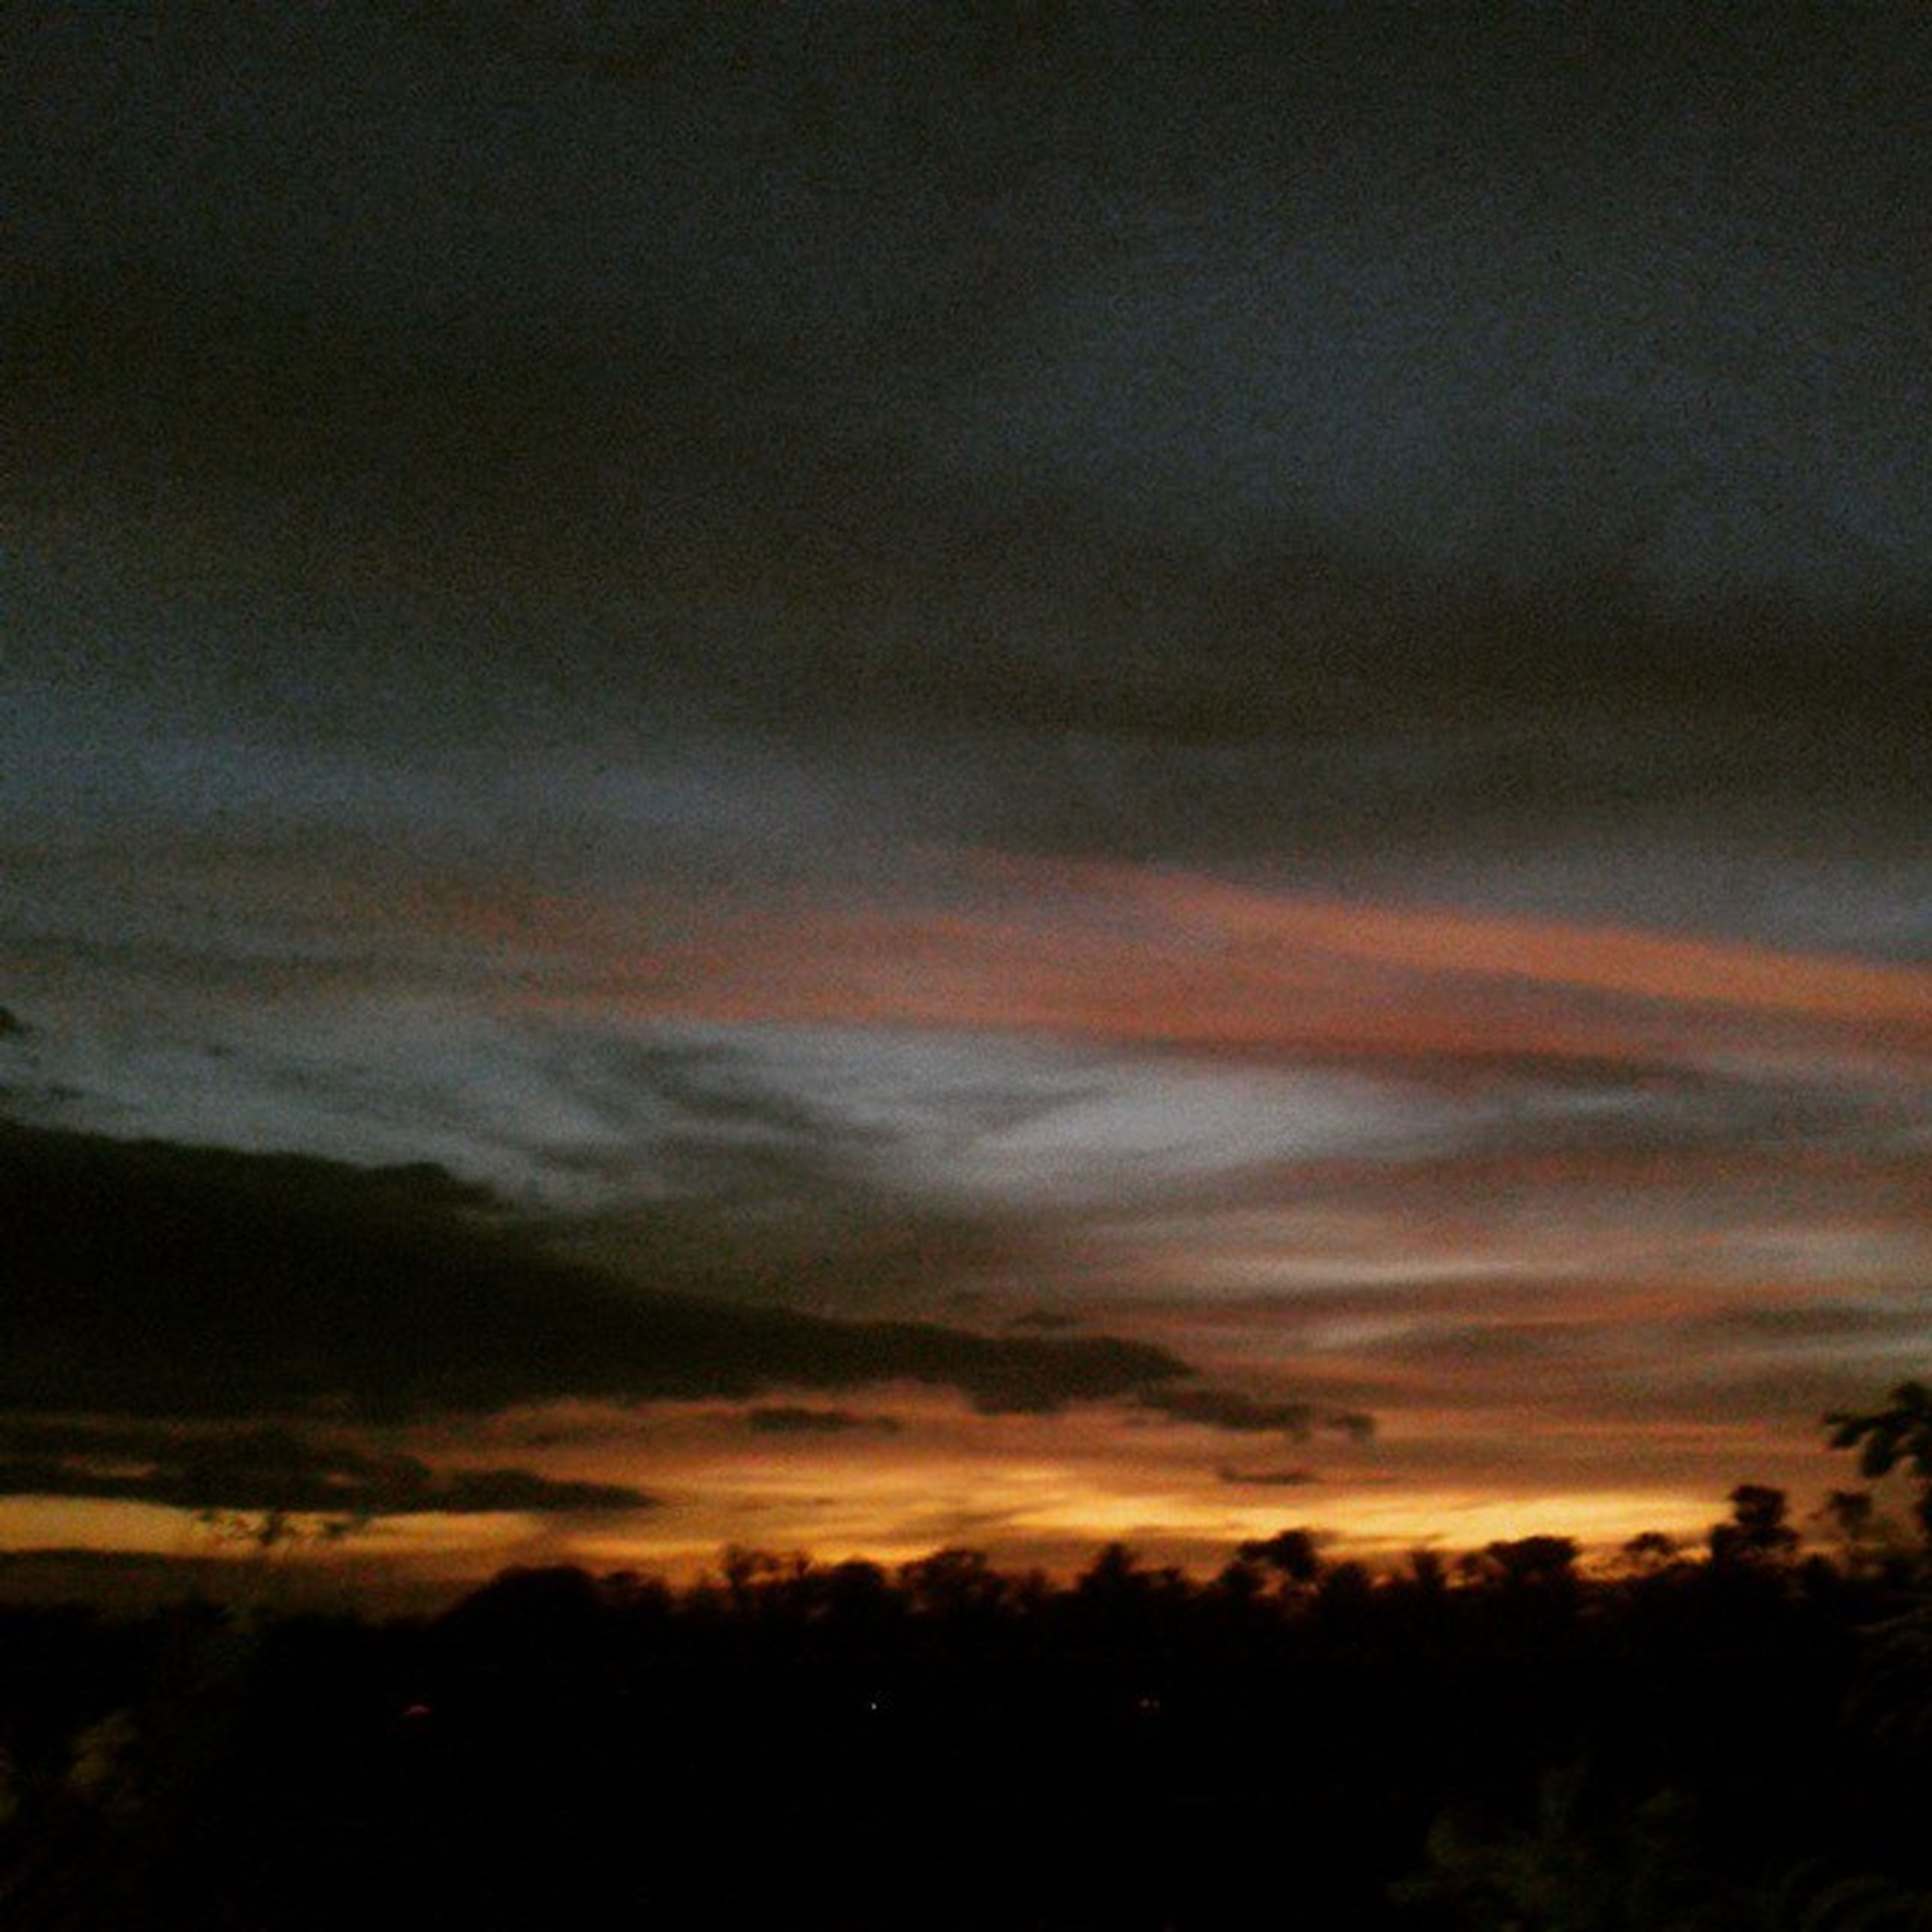 sunset, silhouette, sky, scenics, beauty in nature, tranquil scene, tranquility, cloud - sky, orange color, nature, idyllic, dramatic sky, tree, landscape, cloudy, dusk, low angle view, cloud, weather, outdoors